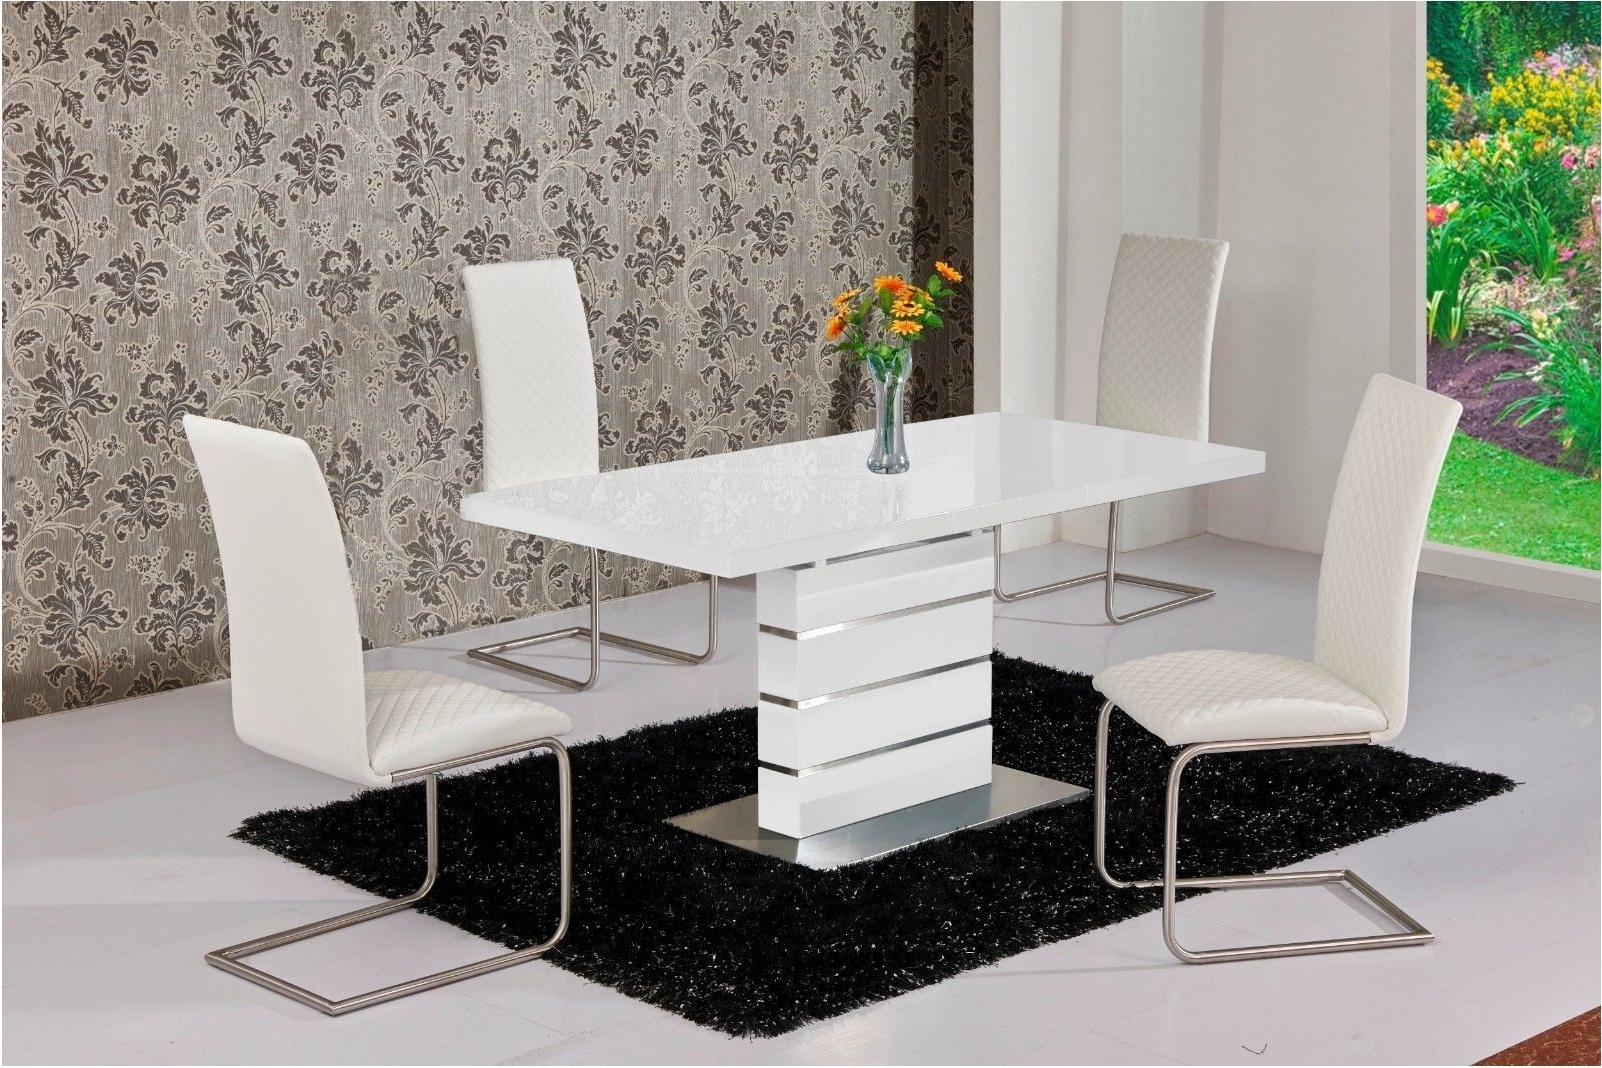 Widely Used Extendable Dining Tables And Chairs Intended For Magnificent Mace High Gloss Extending 120 160 Dining Table Chair Set (View 9 of 25)